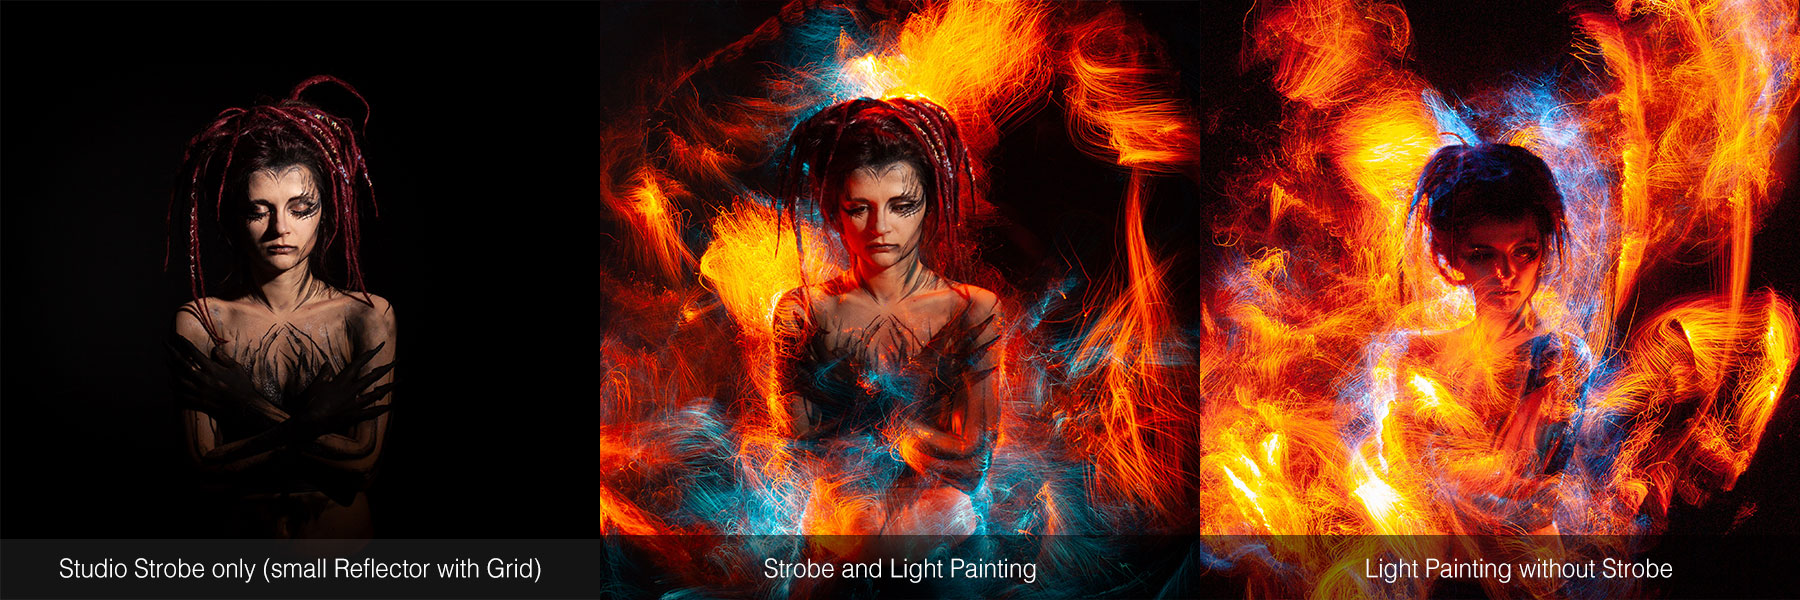 light painting photography tutorial